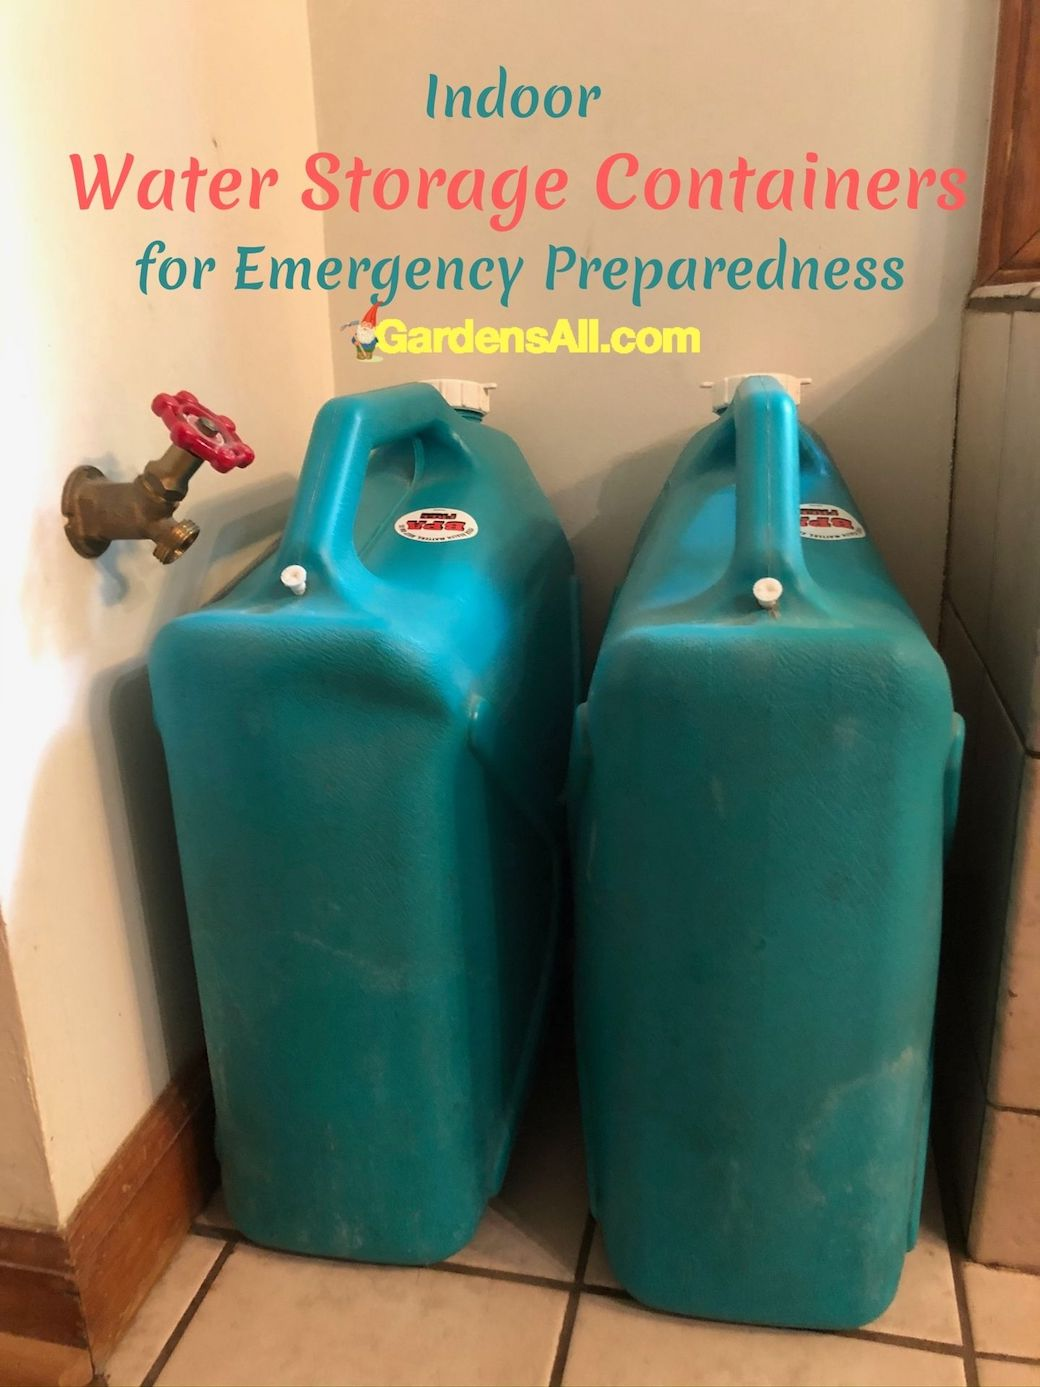 6 Gallon Rigid Water Storage Containers for Emergency Preparedness - GardensAll.com #WaterStorageContainers #6GallonWaterStorageContainers #IndoorWaterStorage #OutdoorWaterStorage